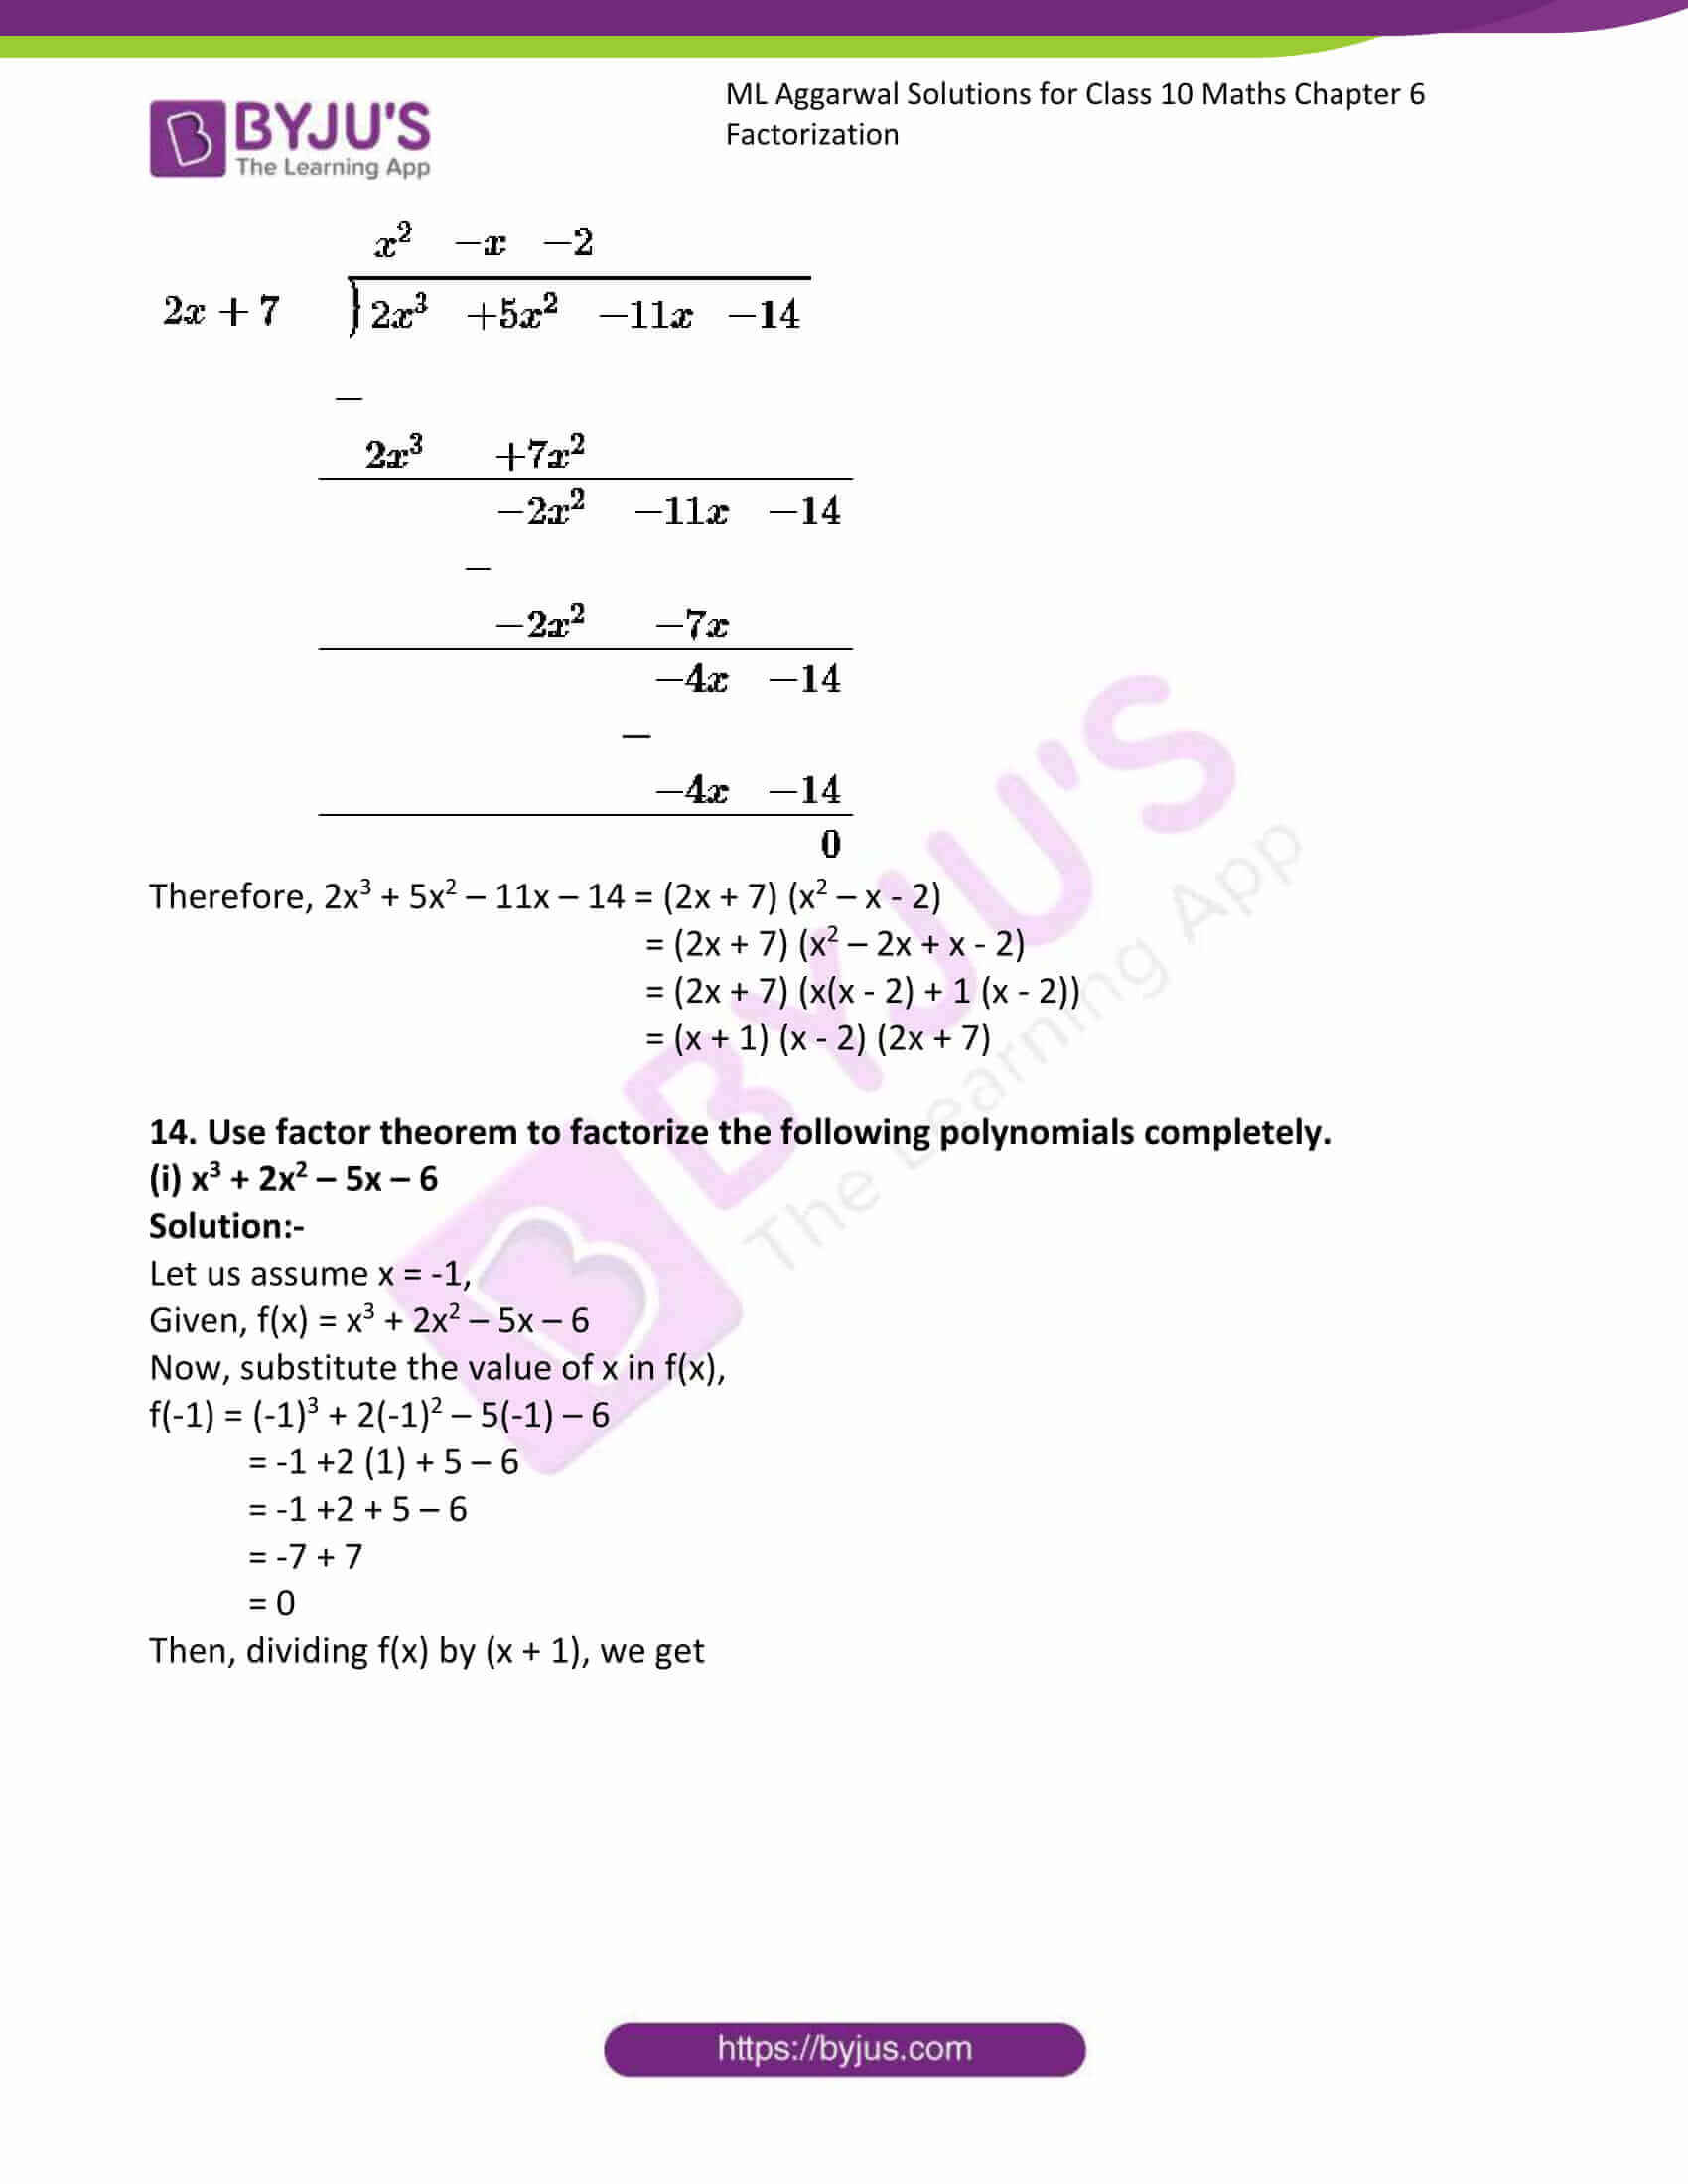 ml aggarwal solutions class 10 maths chapter 6 11